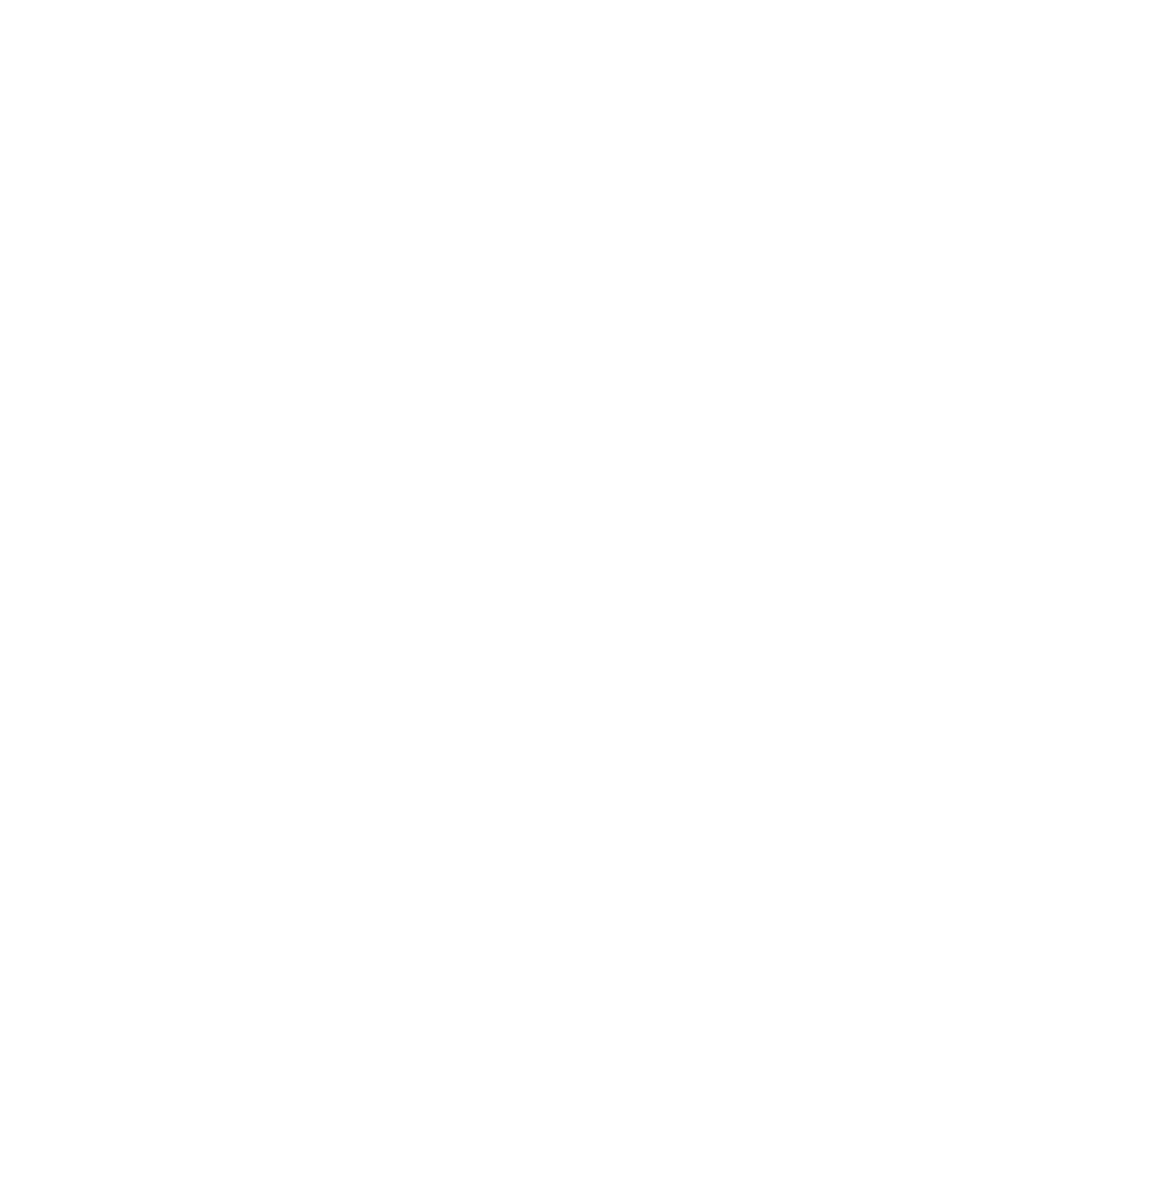 Surf Education Academy